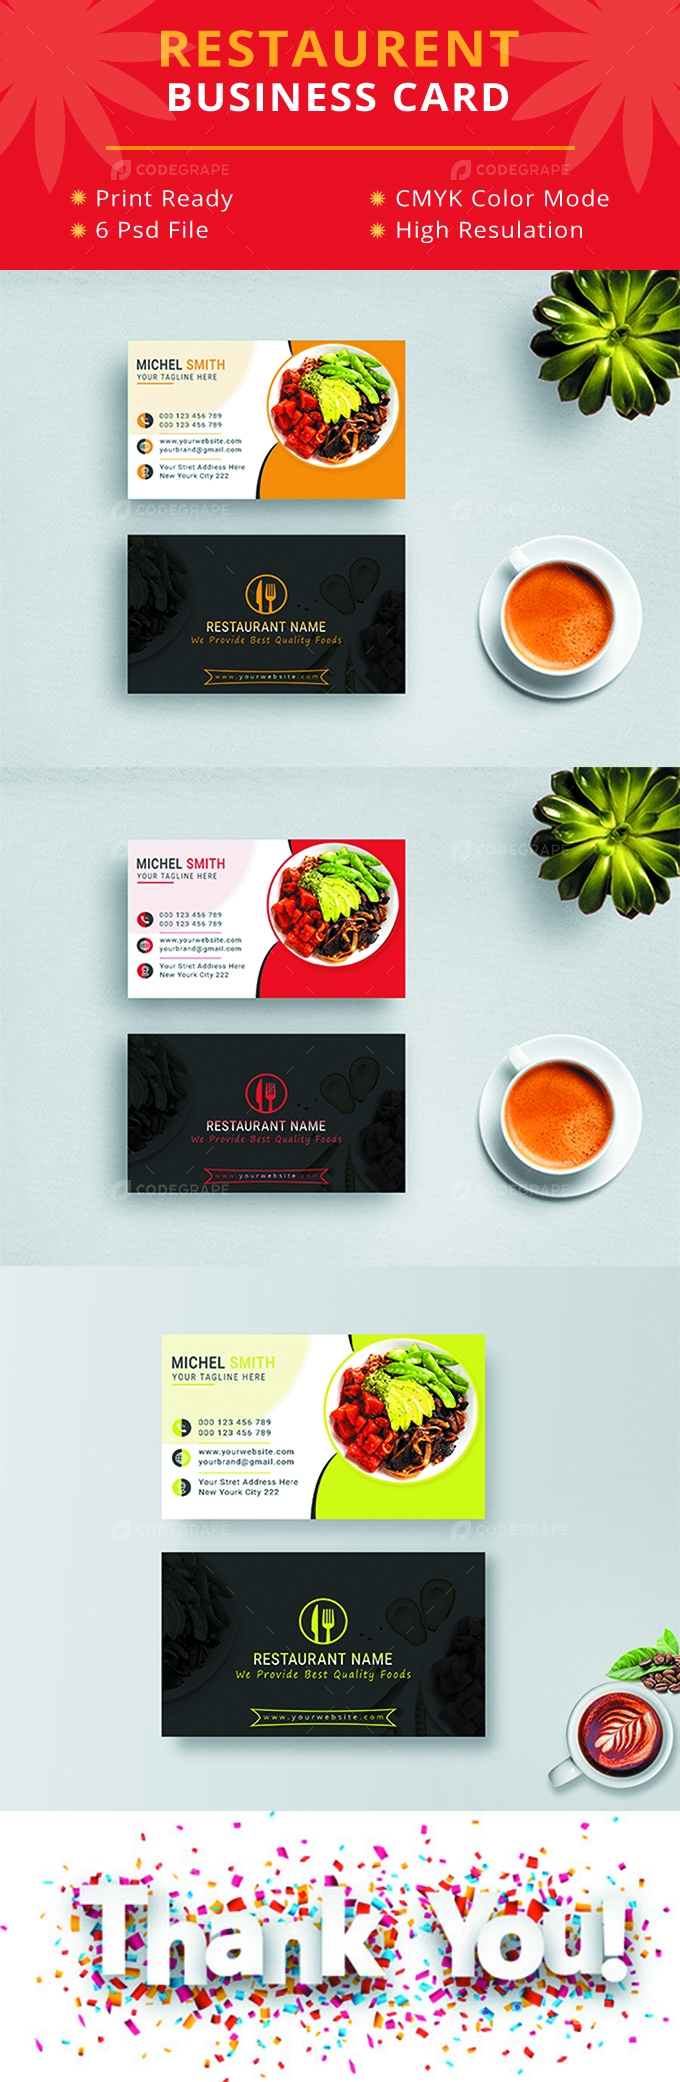 Restaurent Business Card